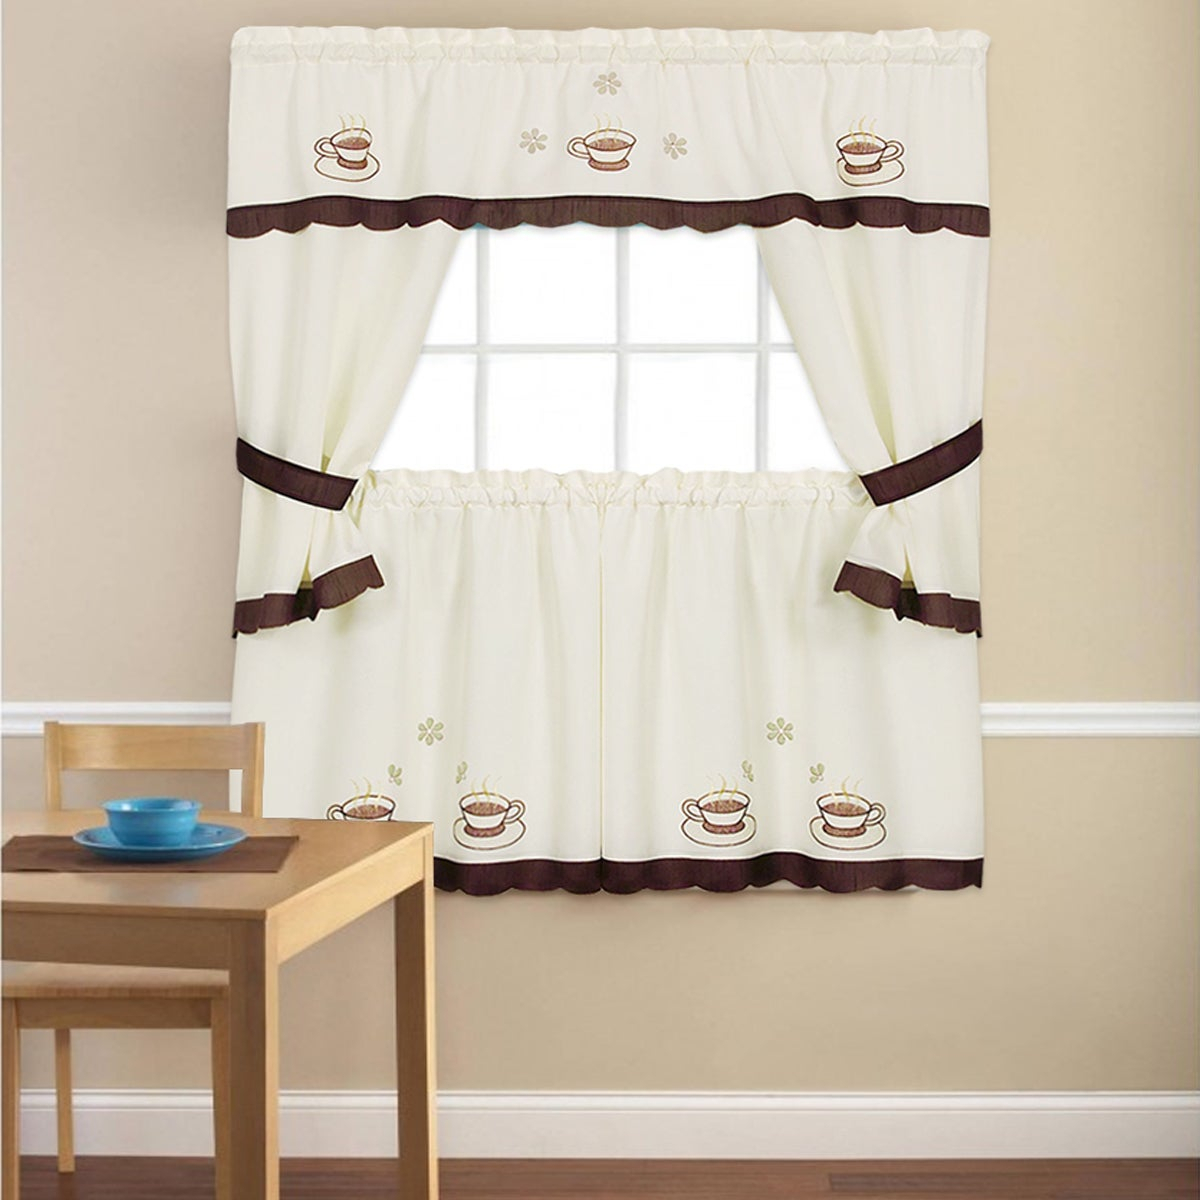 Embroidered 'coffee Cup' 5 Piece Kitchen Curtain Set Regarding Coffee Drinks Embroidered Window Valances And Tiers (View 7 of 20)